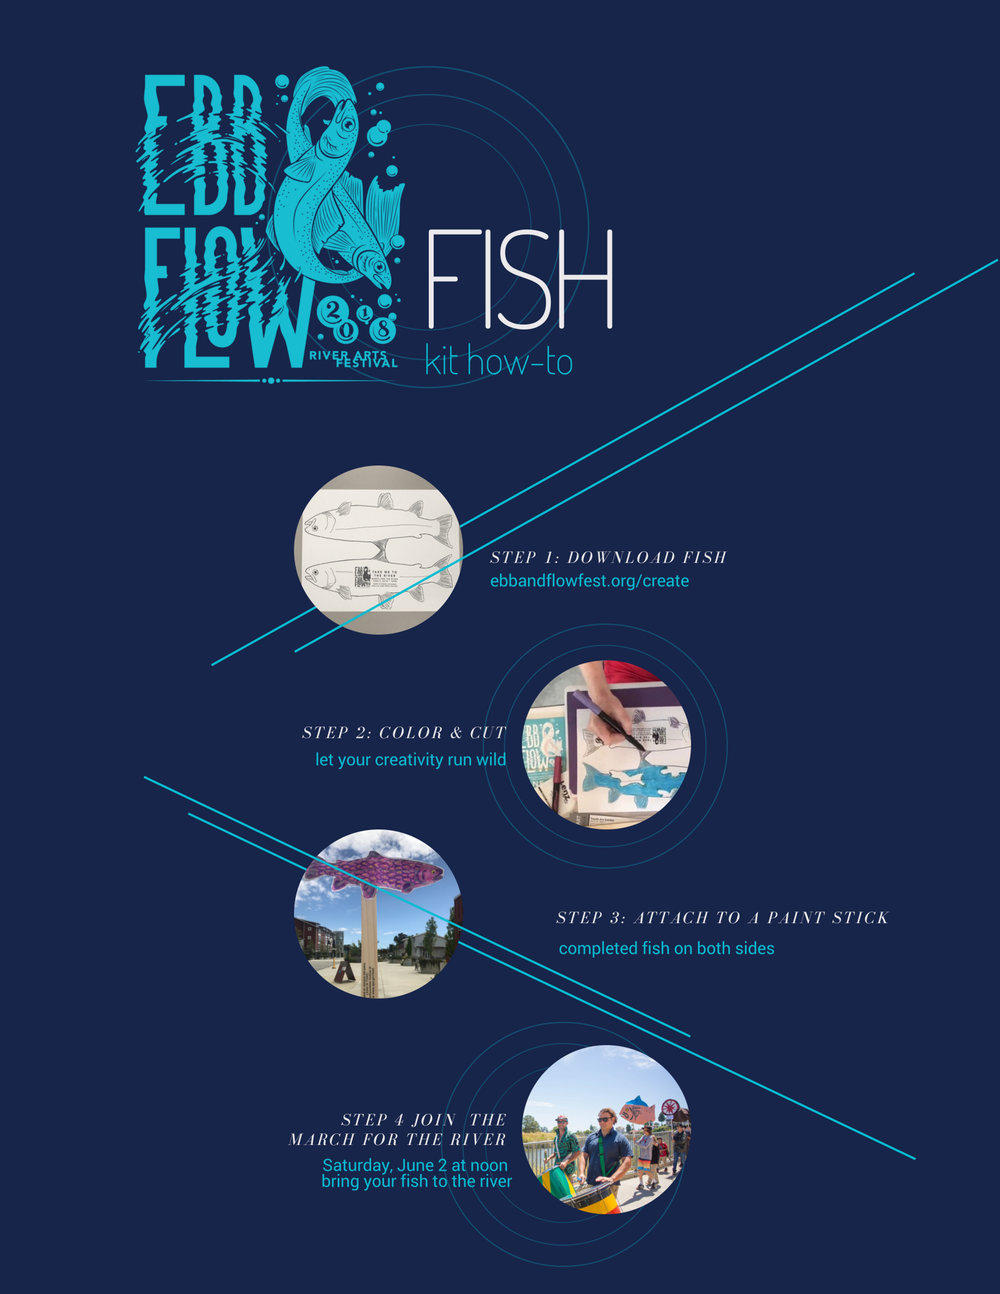 March for the River School of Fish - Coming to the March for the River? Want to add an extra splash of fun to your family's experience? Download a fish kit and be part of a